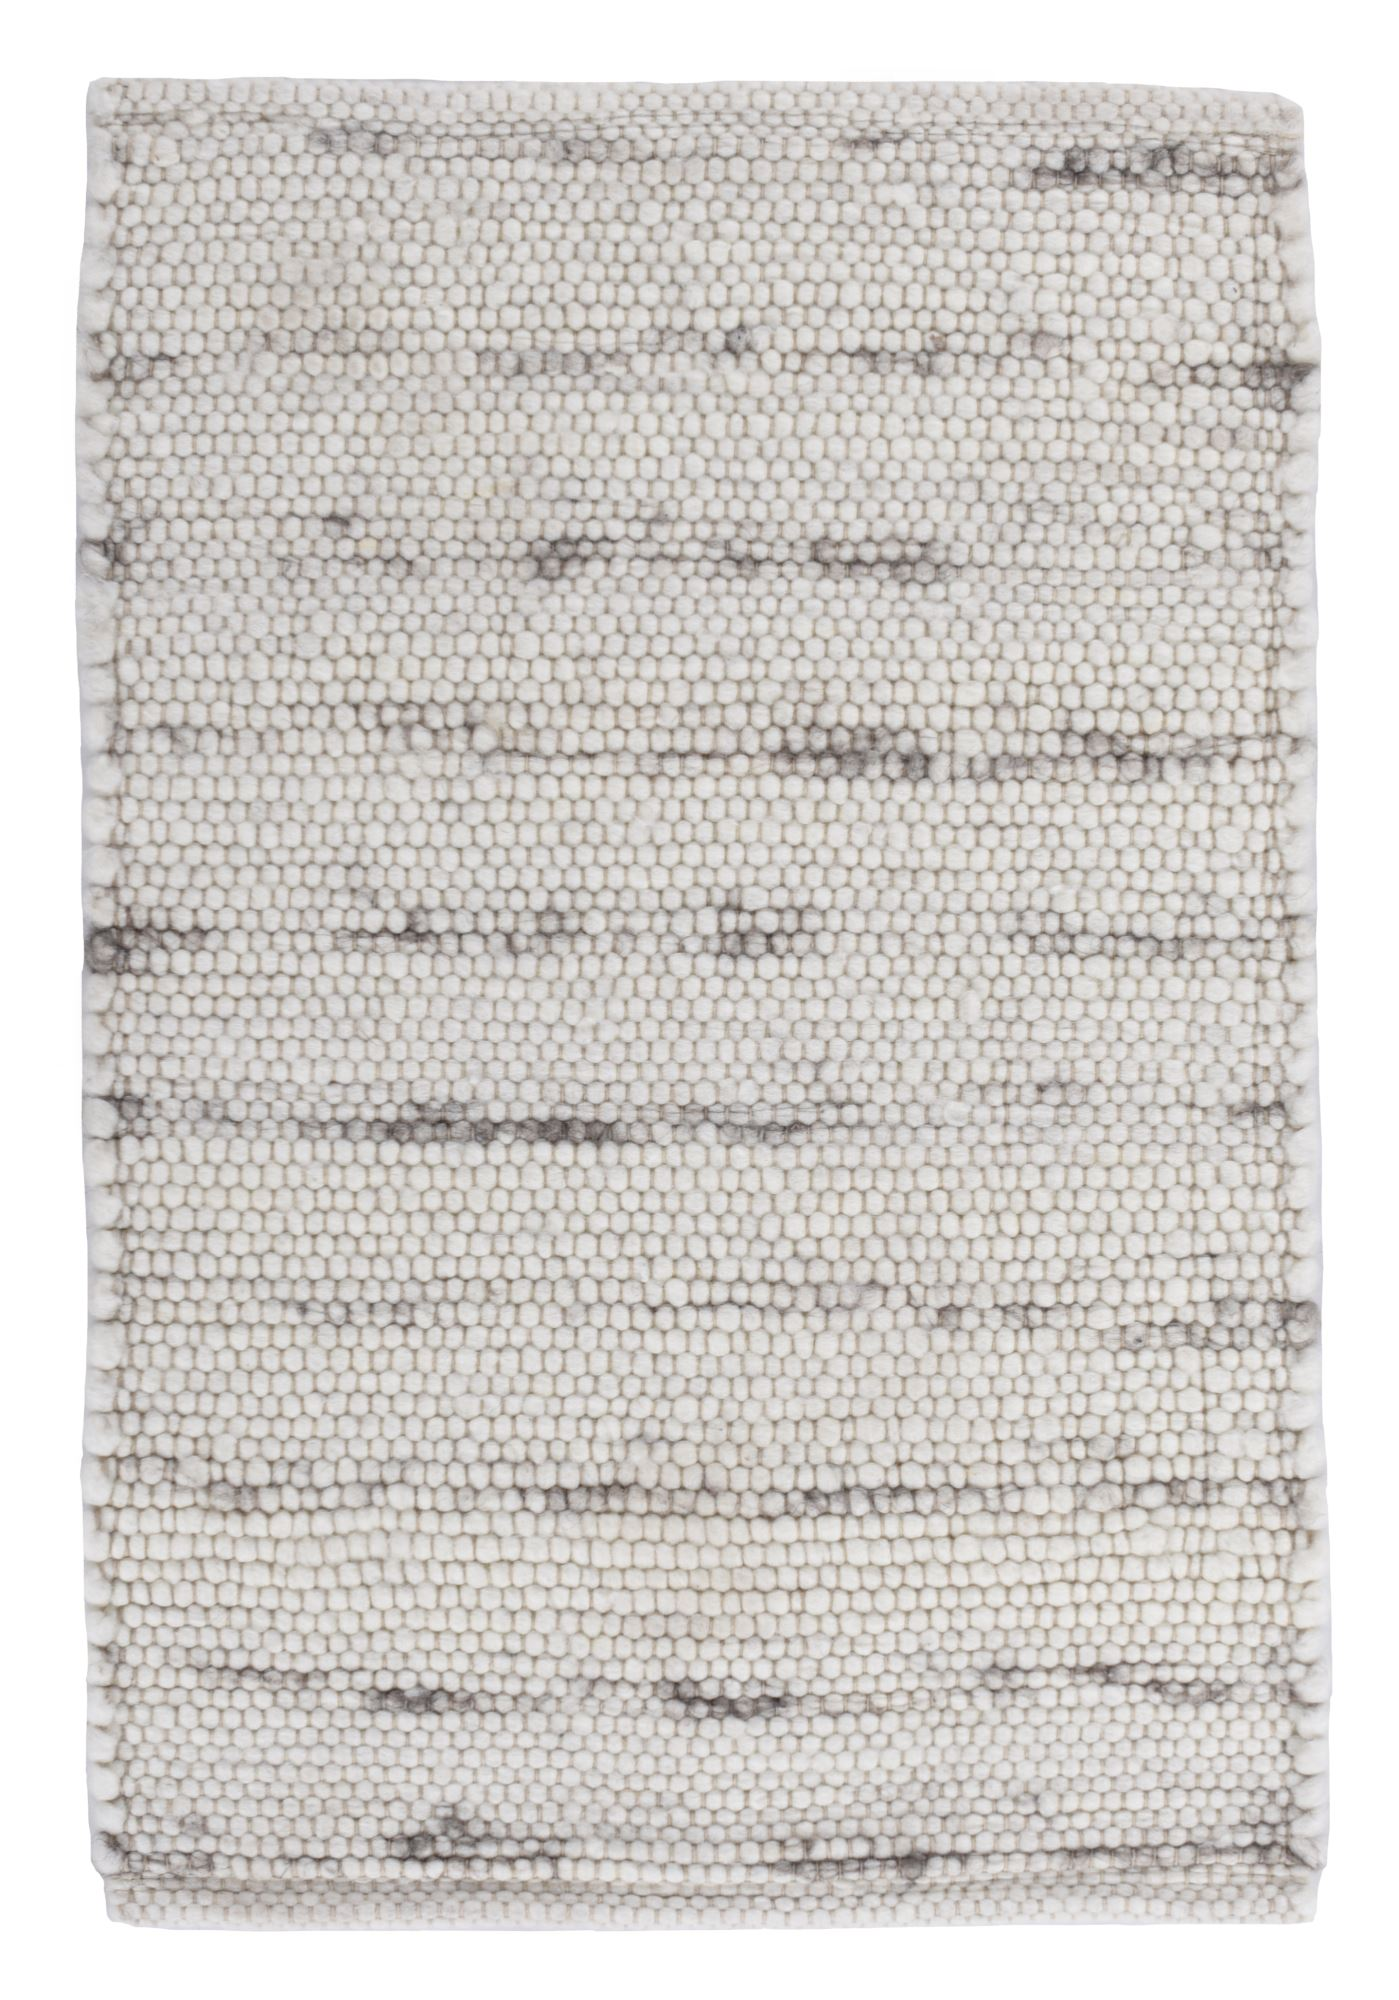 Tapis tissé à la main en laine naturelle natural grey 70x130